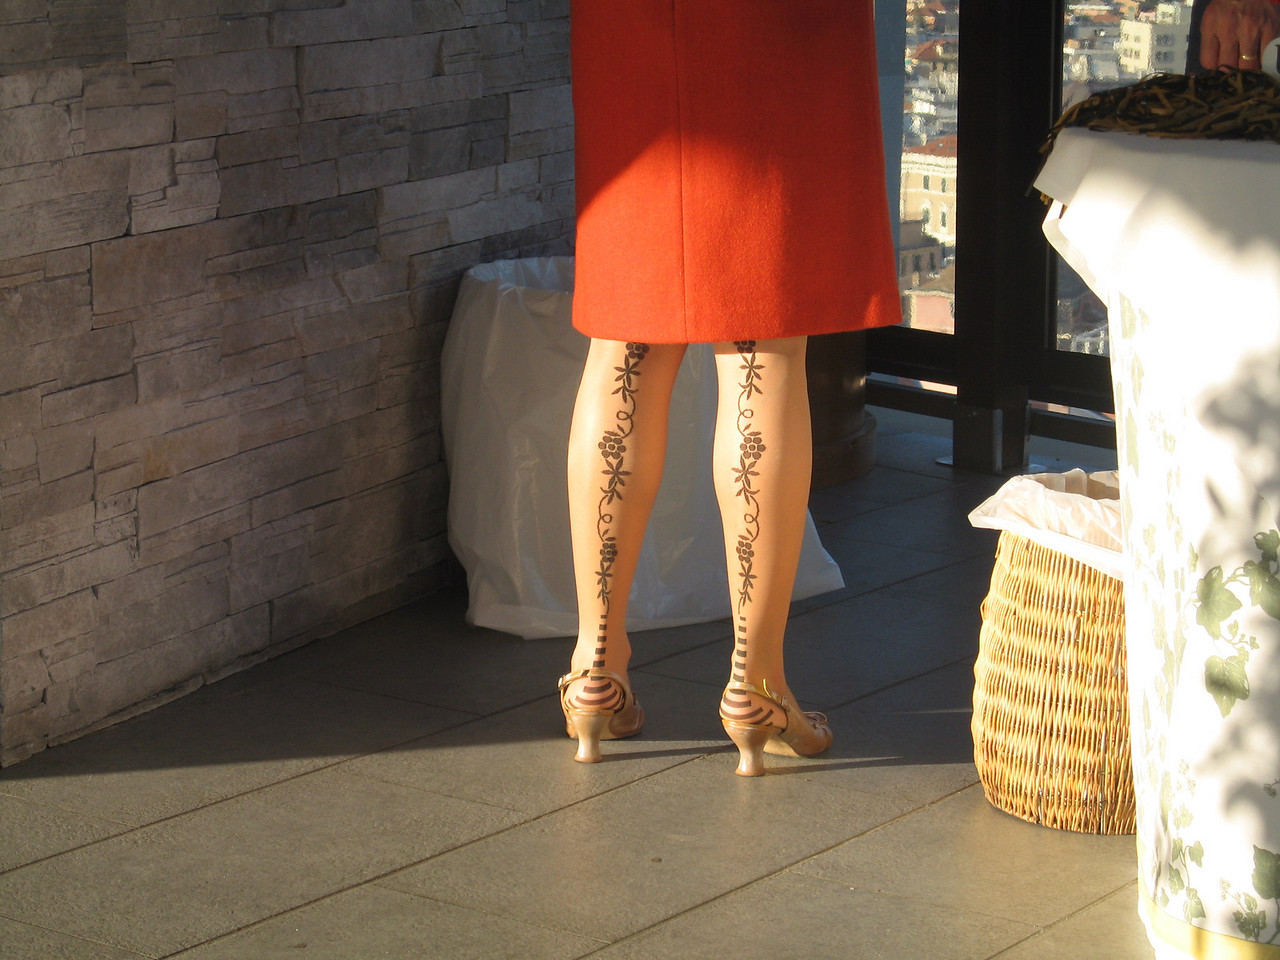 View of our guide Antonella's beautiful tattoed legs (just kidding, they're stockings).